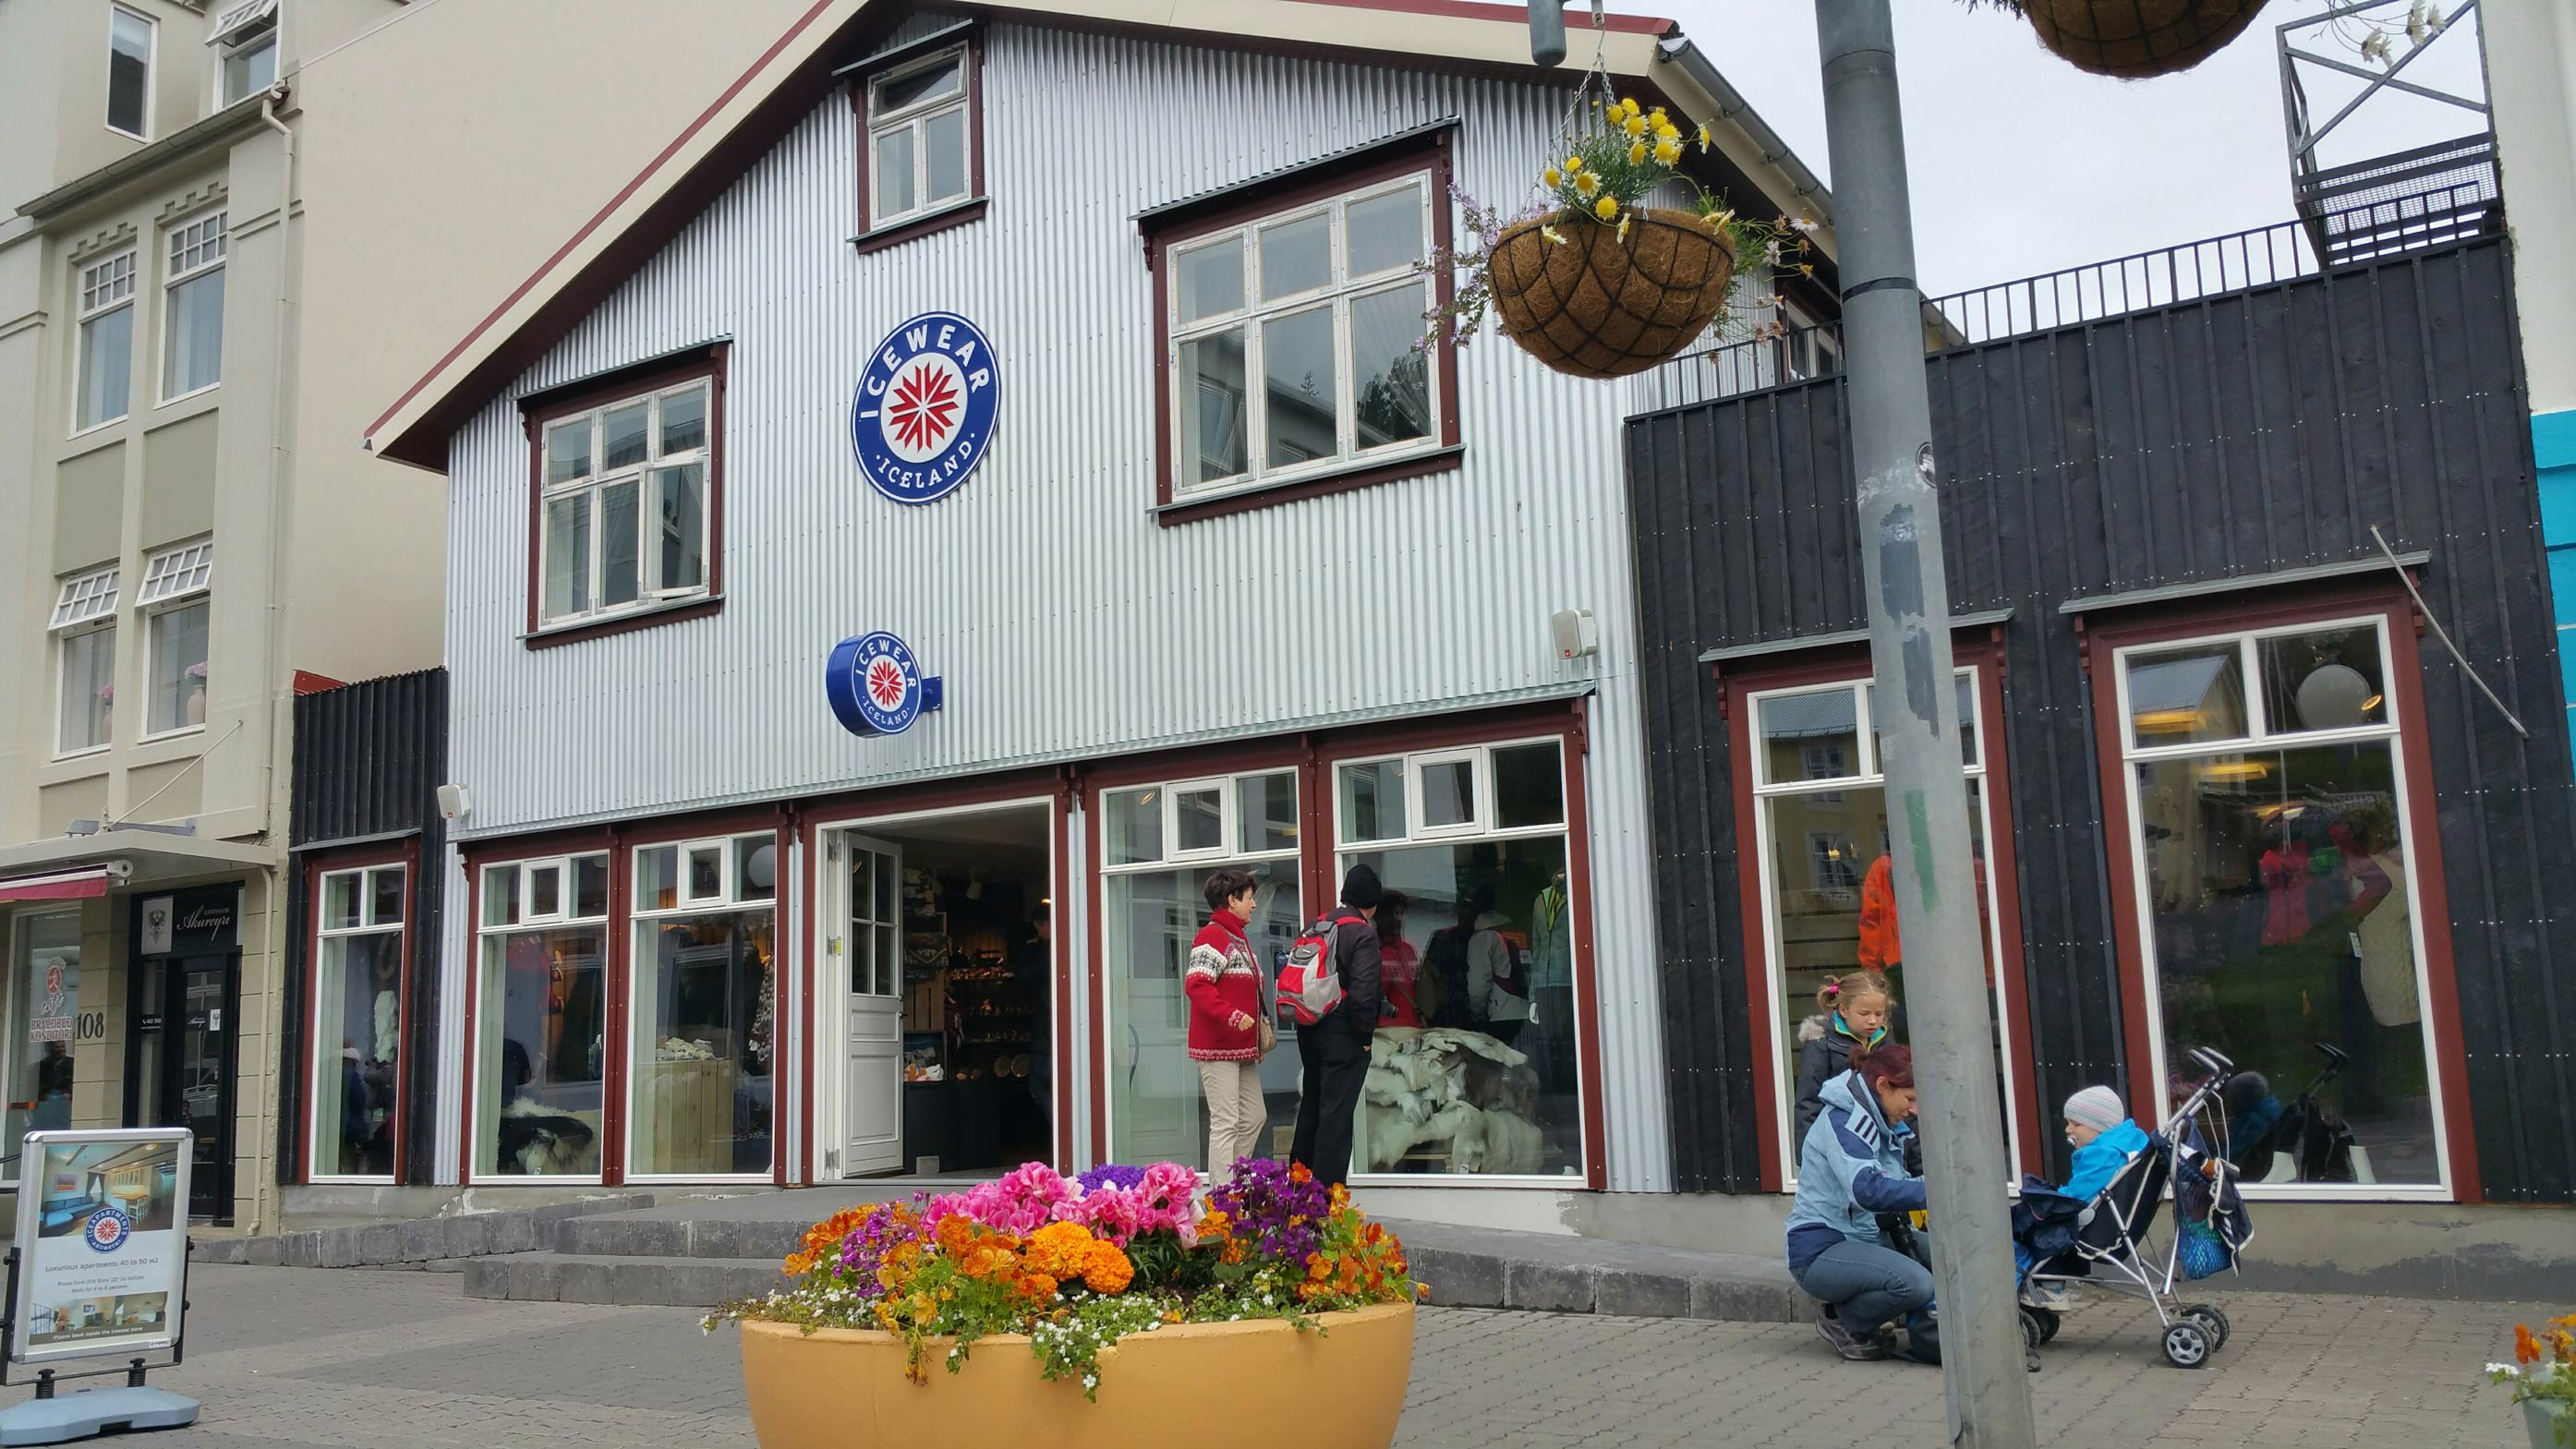 akureyri divorced singles Akureyri (iceland) 0800 1700 16/07/19 at sea-- our guests can be single, separated, divorced how do i connect with other singles going on holiday.